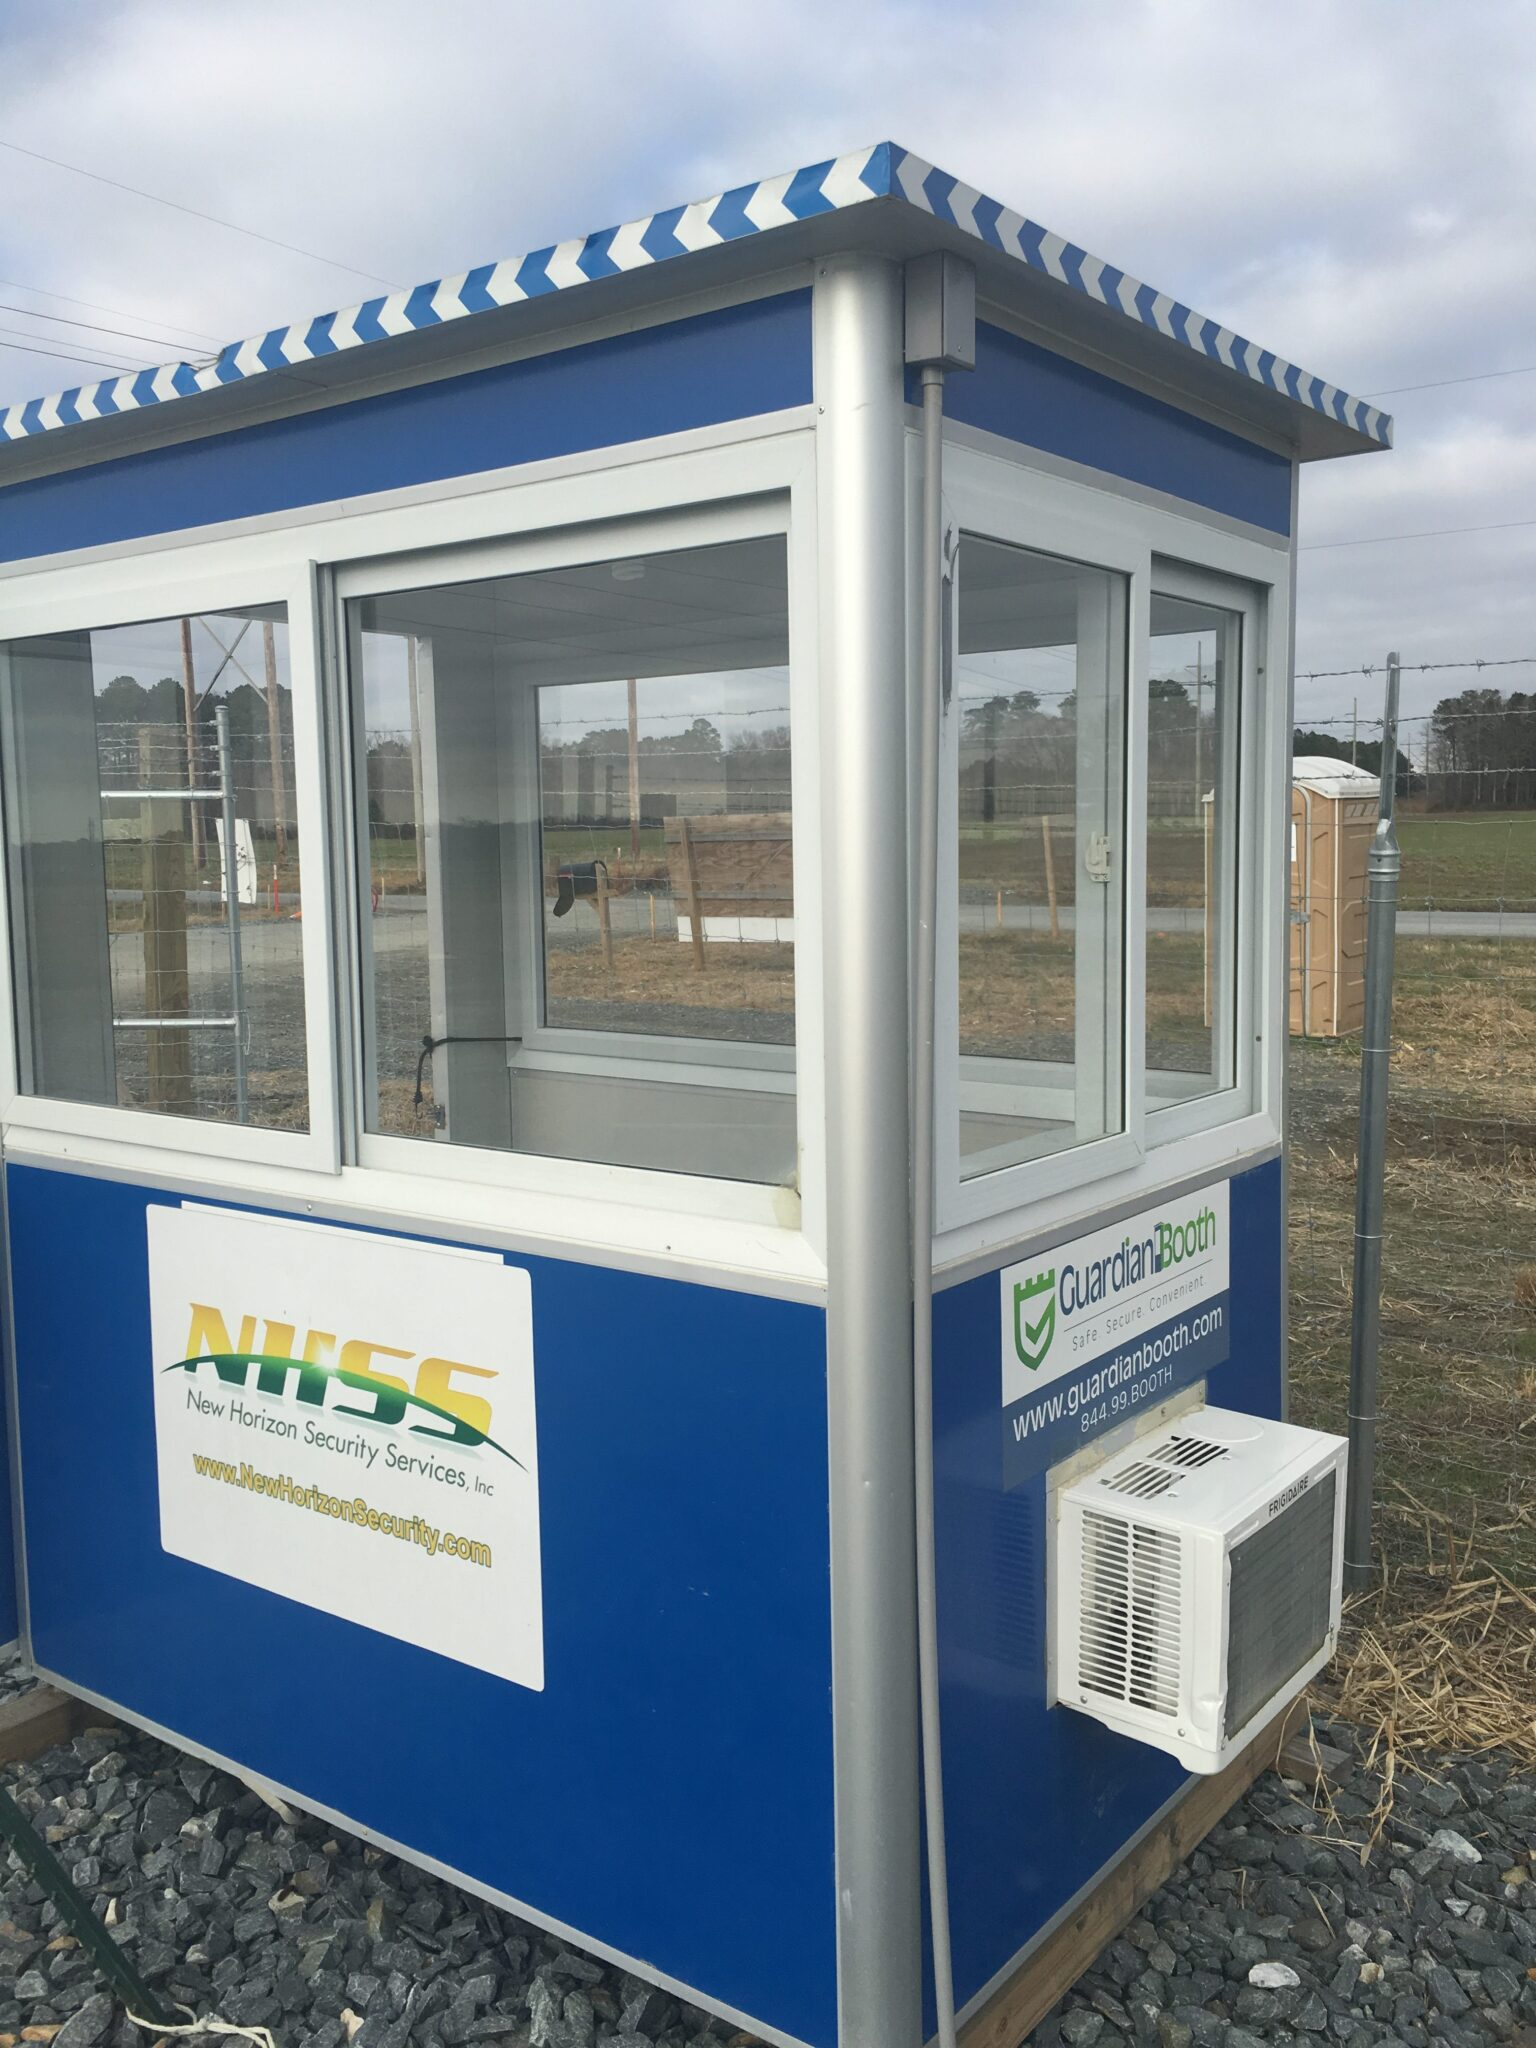 4x6 Security Guard Booth in Oak Hall, VA with Built-in AC, Baseboard Heaters, Sliding Windows, and Breaker Panel Box